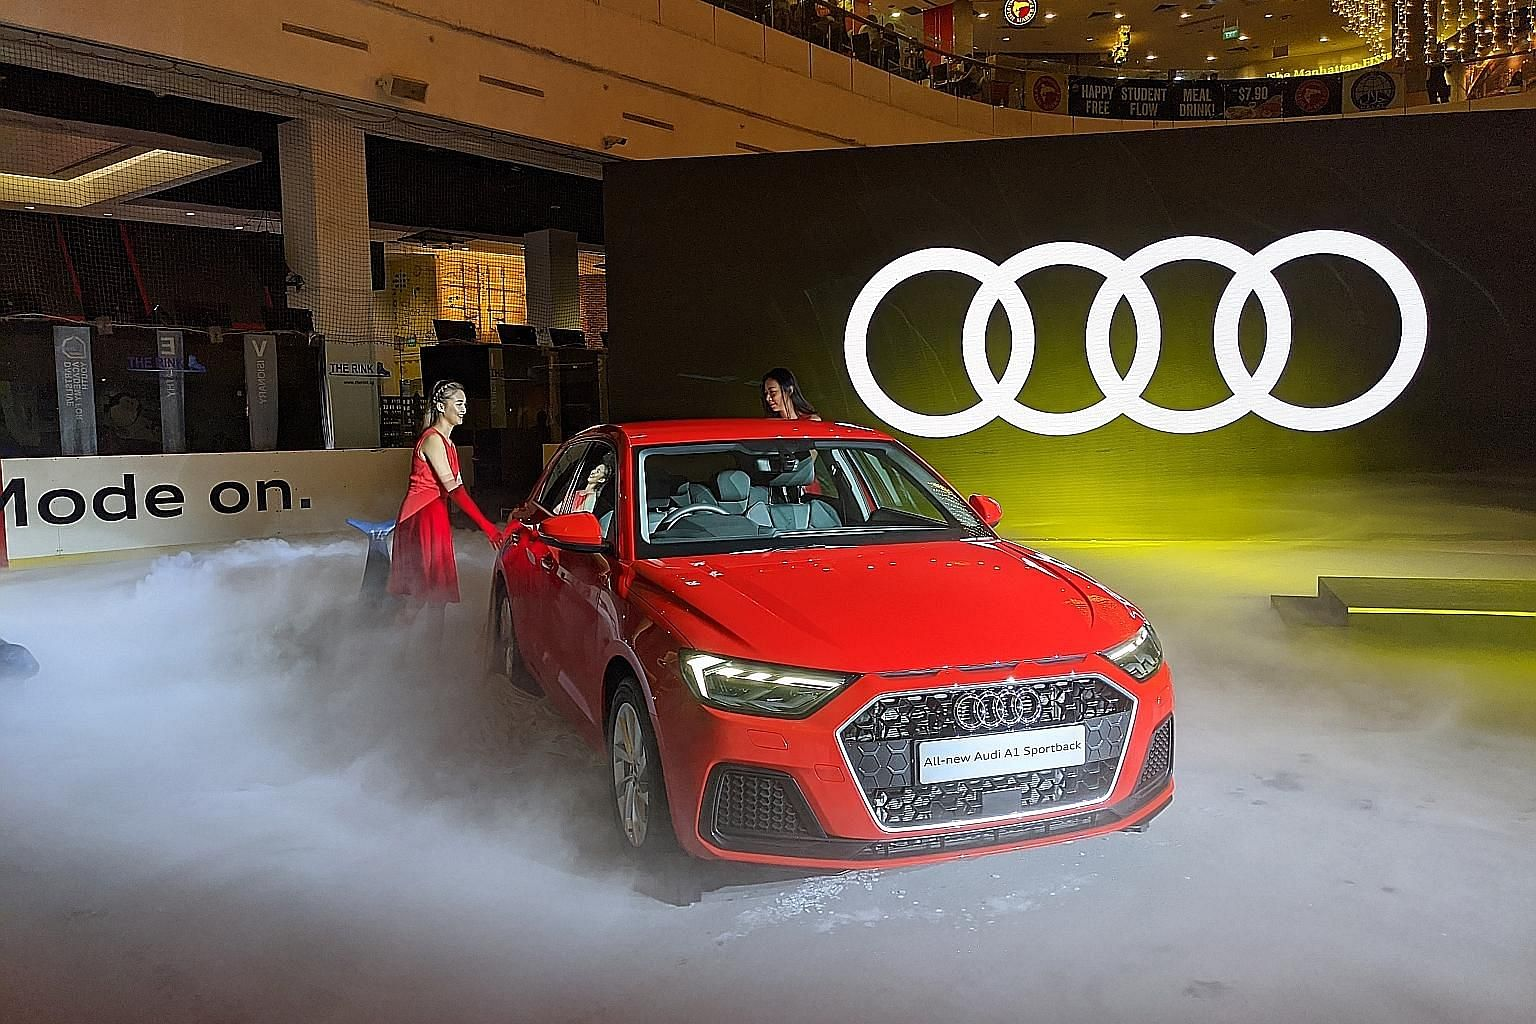 Audi A1 Sportback available here